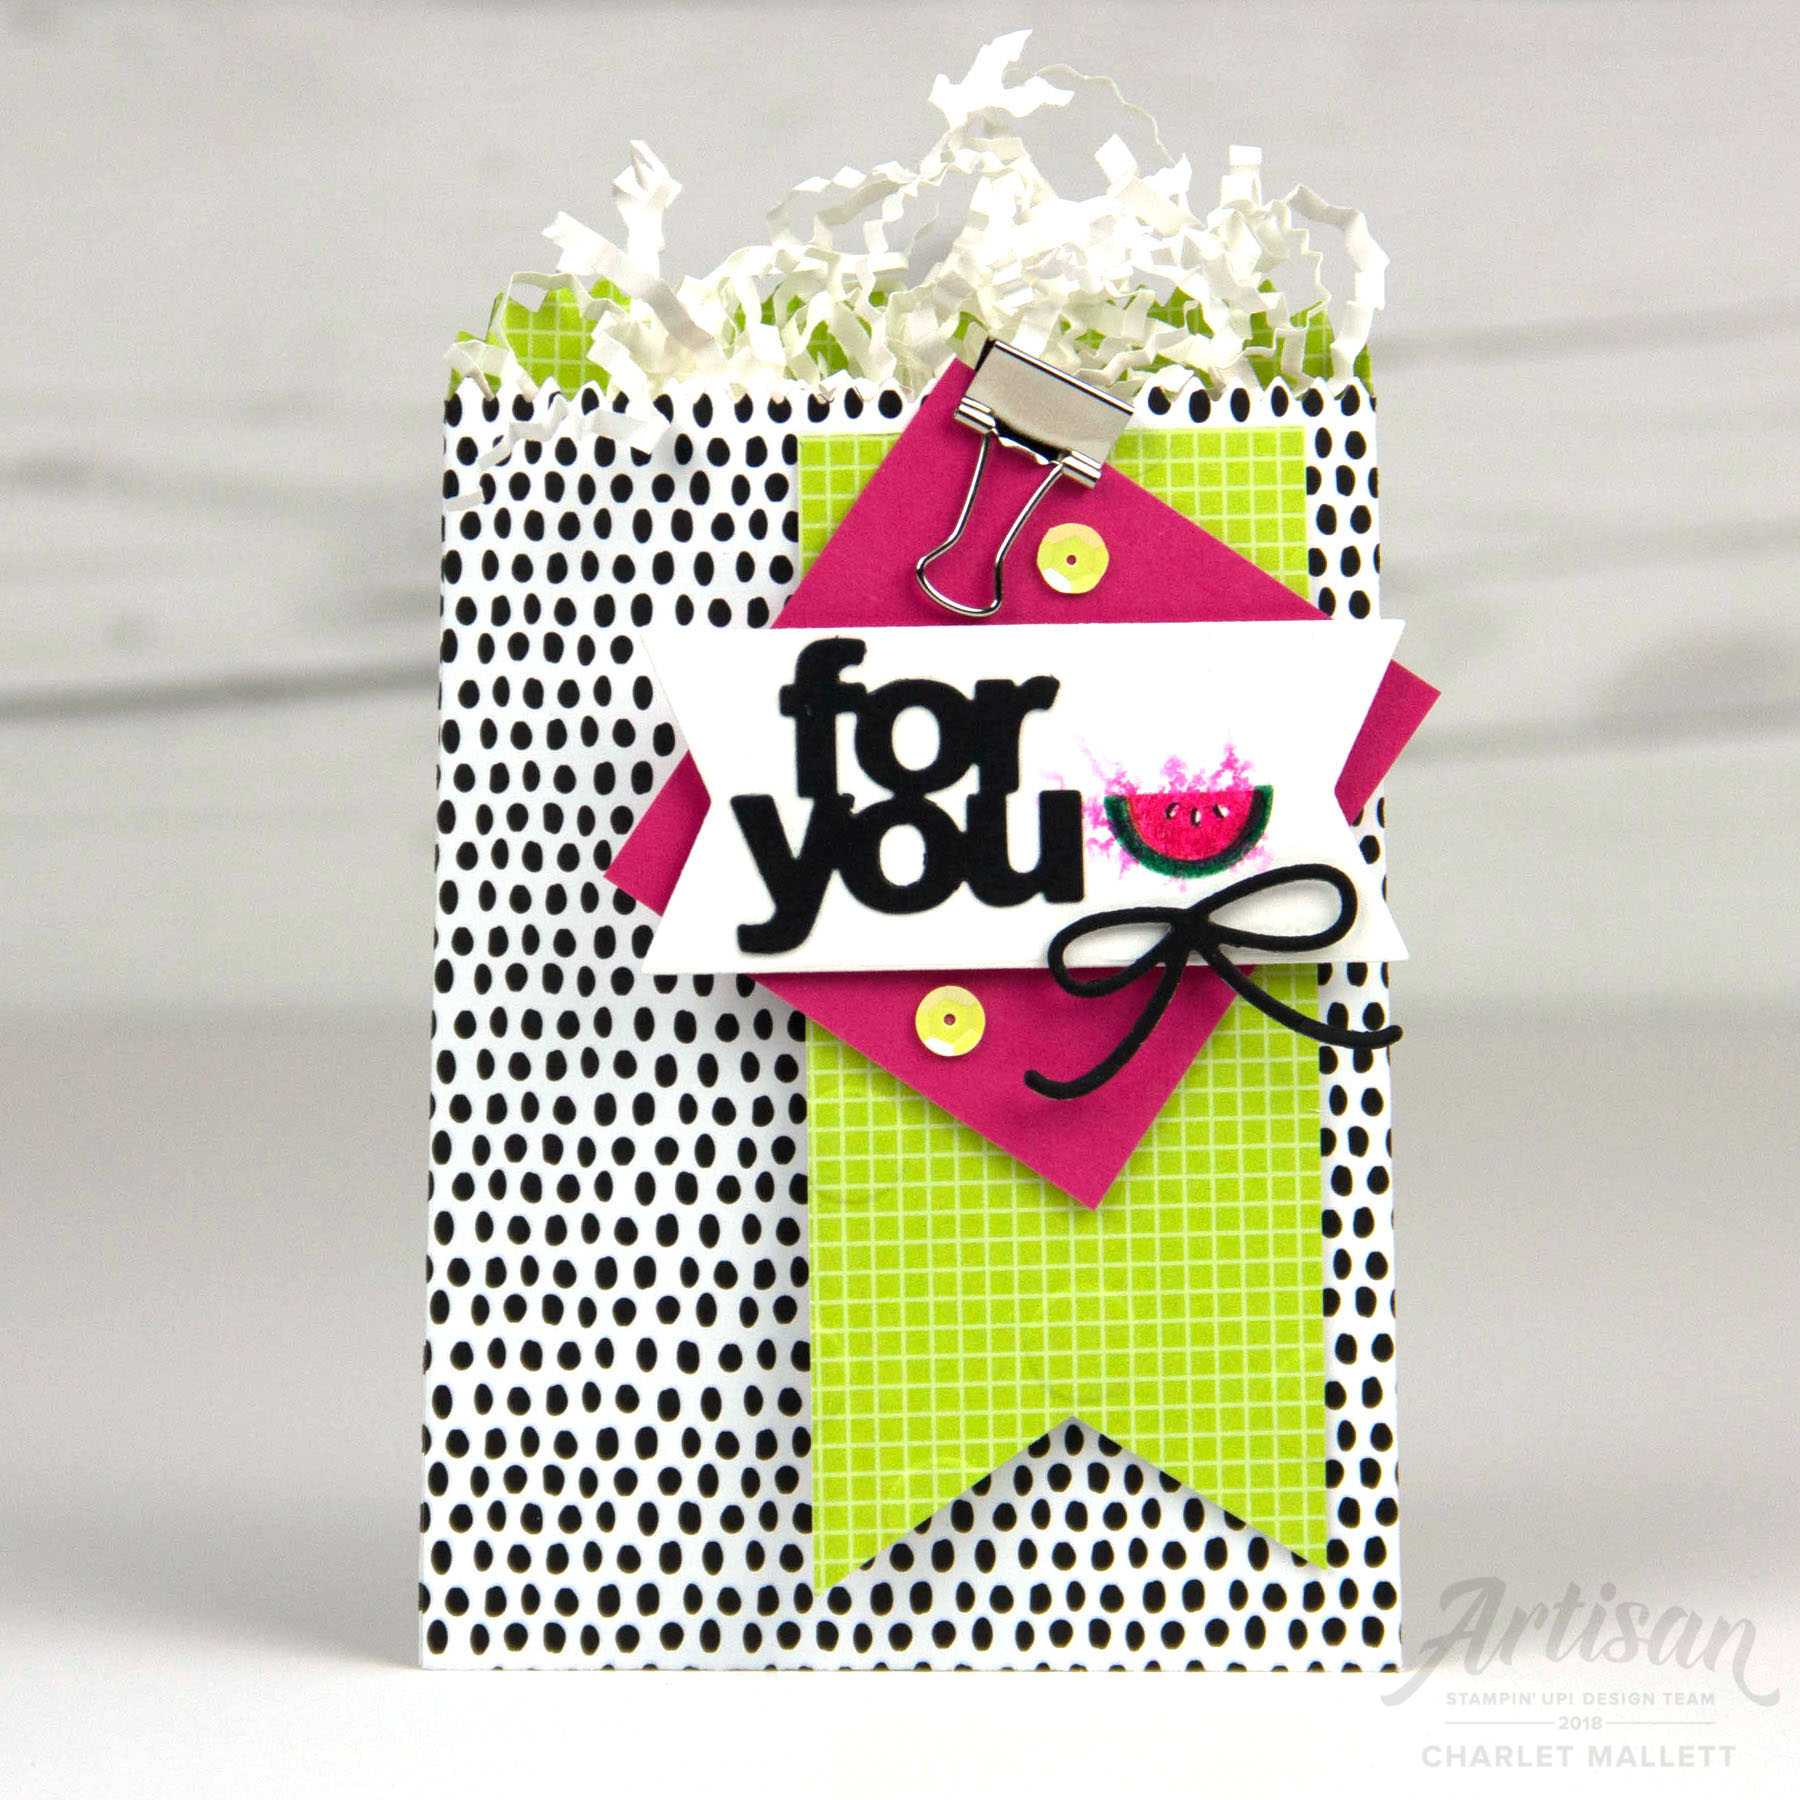 Fruit Basket Watermelon gift bag- Charlet Mallett, Stampin' Up! 2018 Artisan Design Team